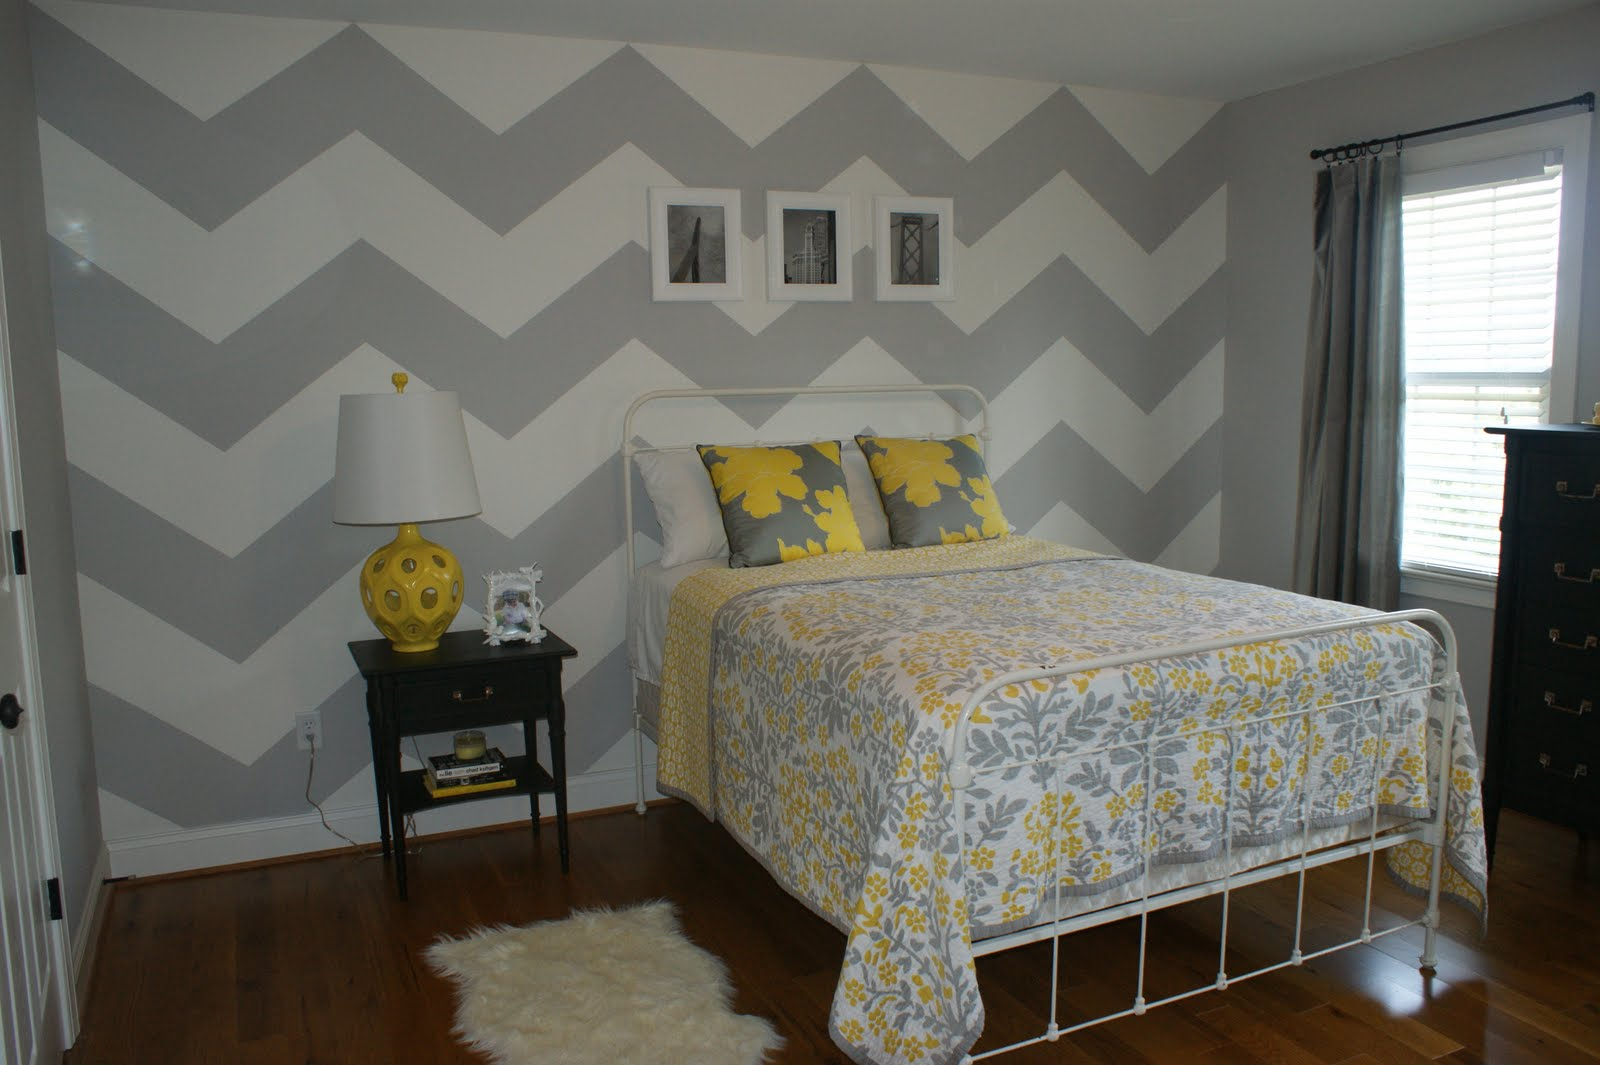 chevron template for walls - chevron walls cline rose